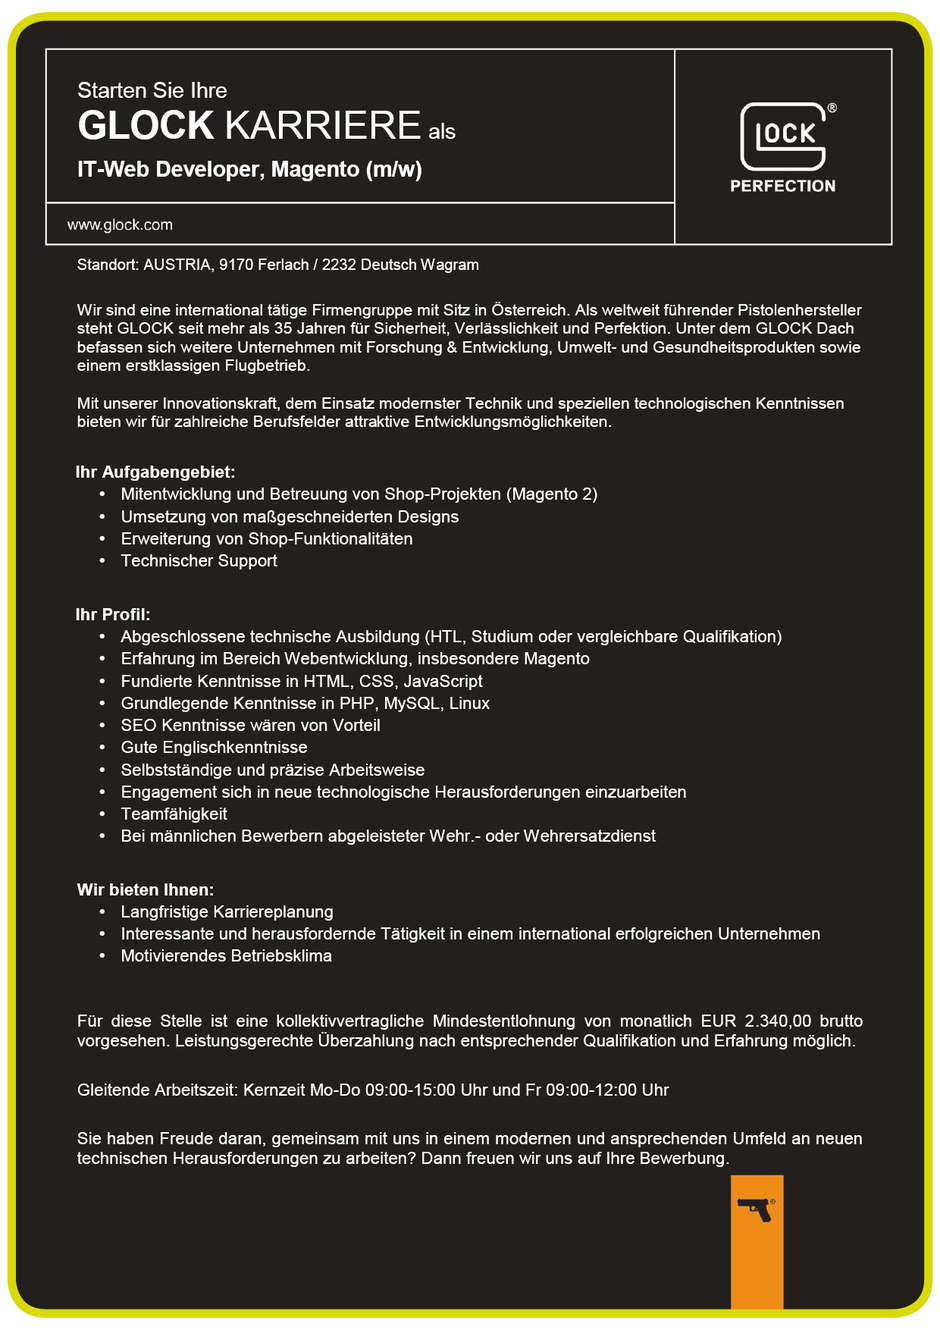 Software Developer Jobs - IT-Web Developer Magento - Glock GesmbH - 2 - Ferlach - Kärnten